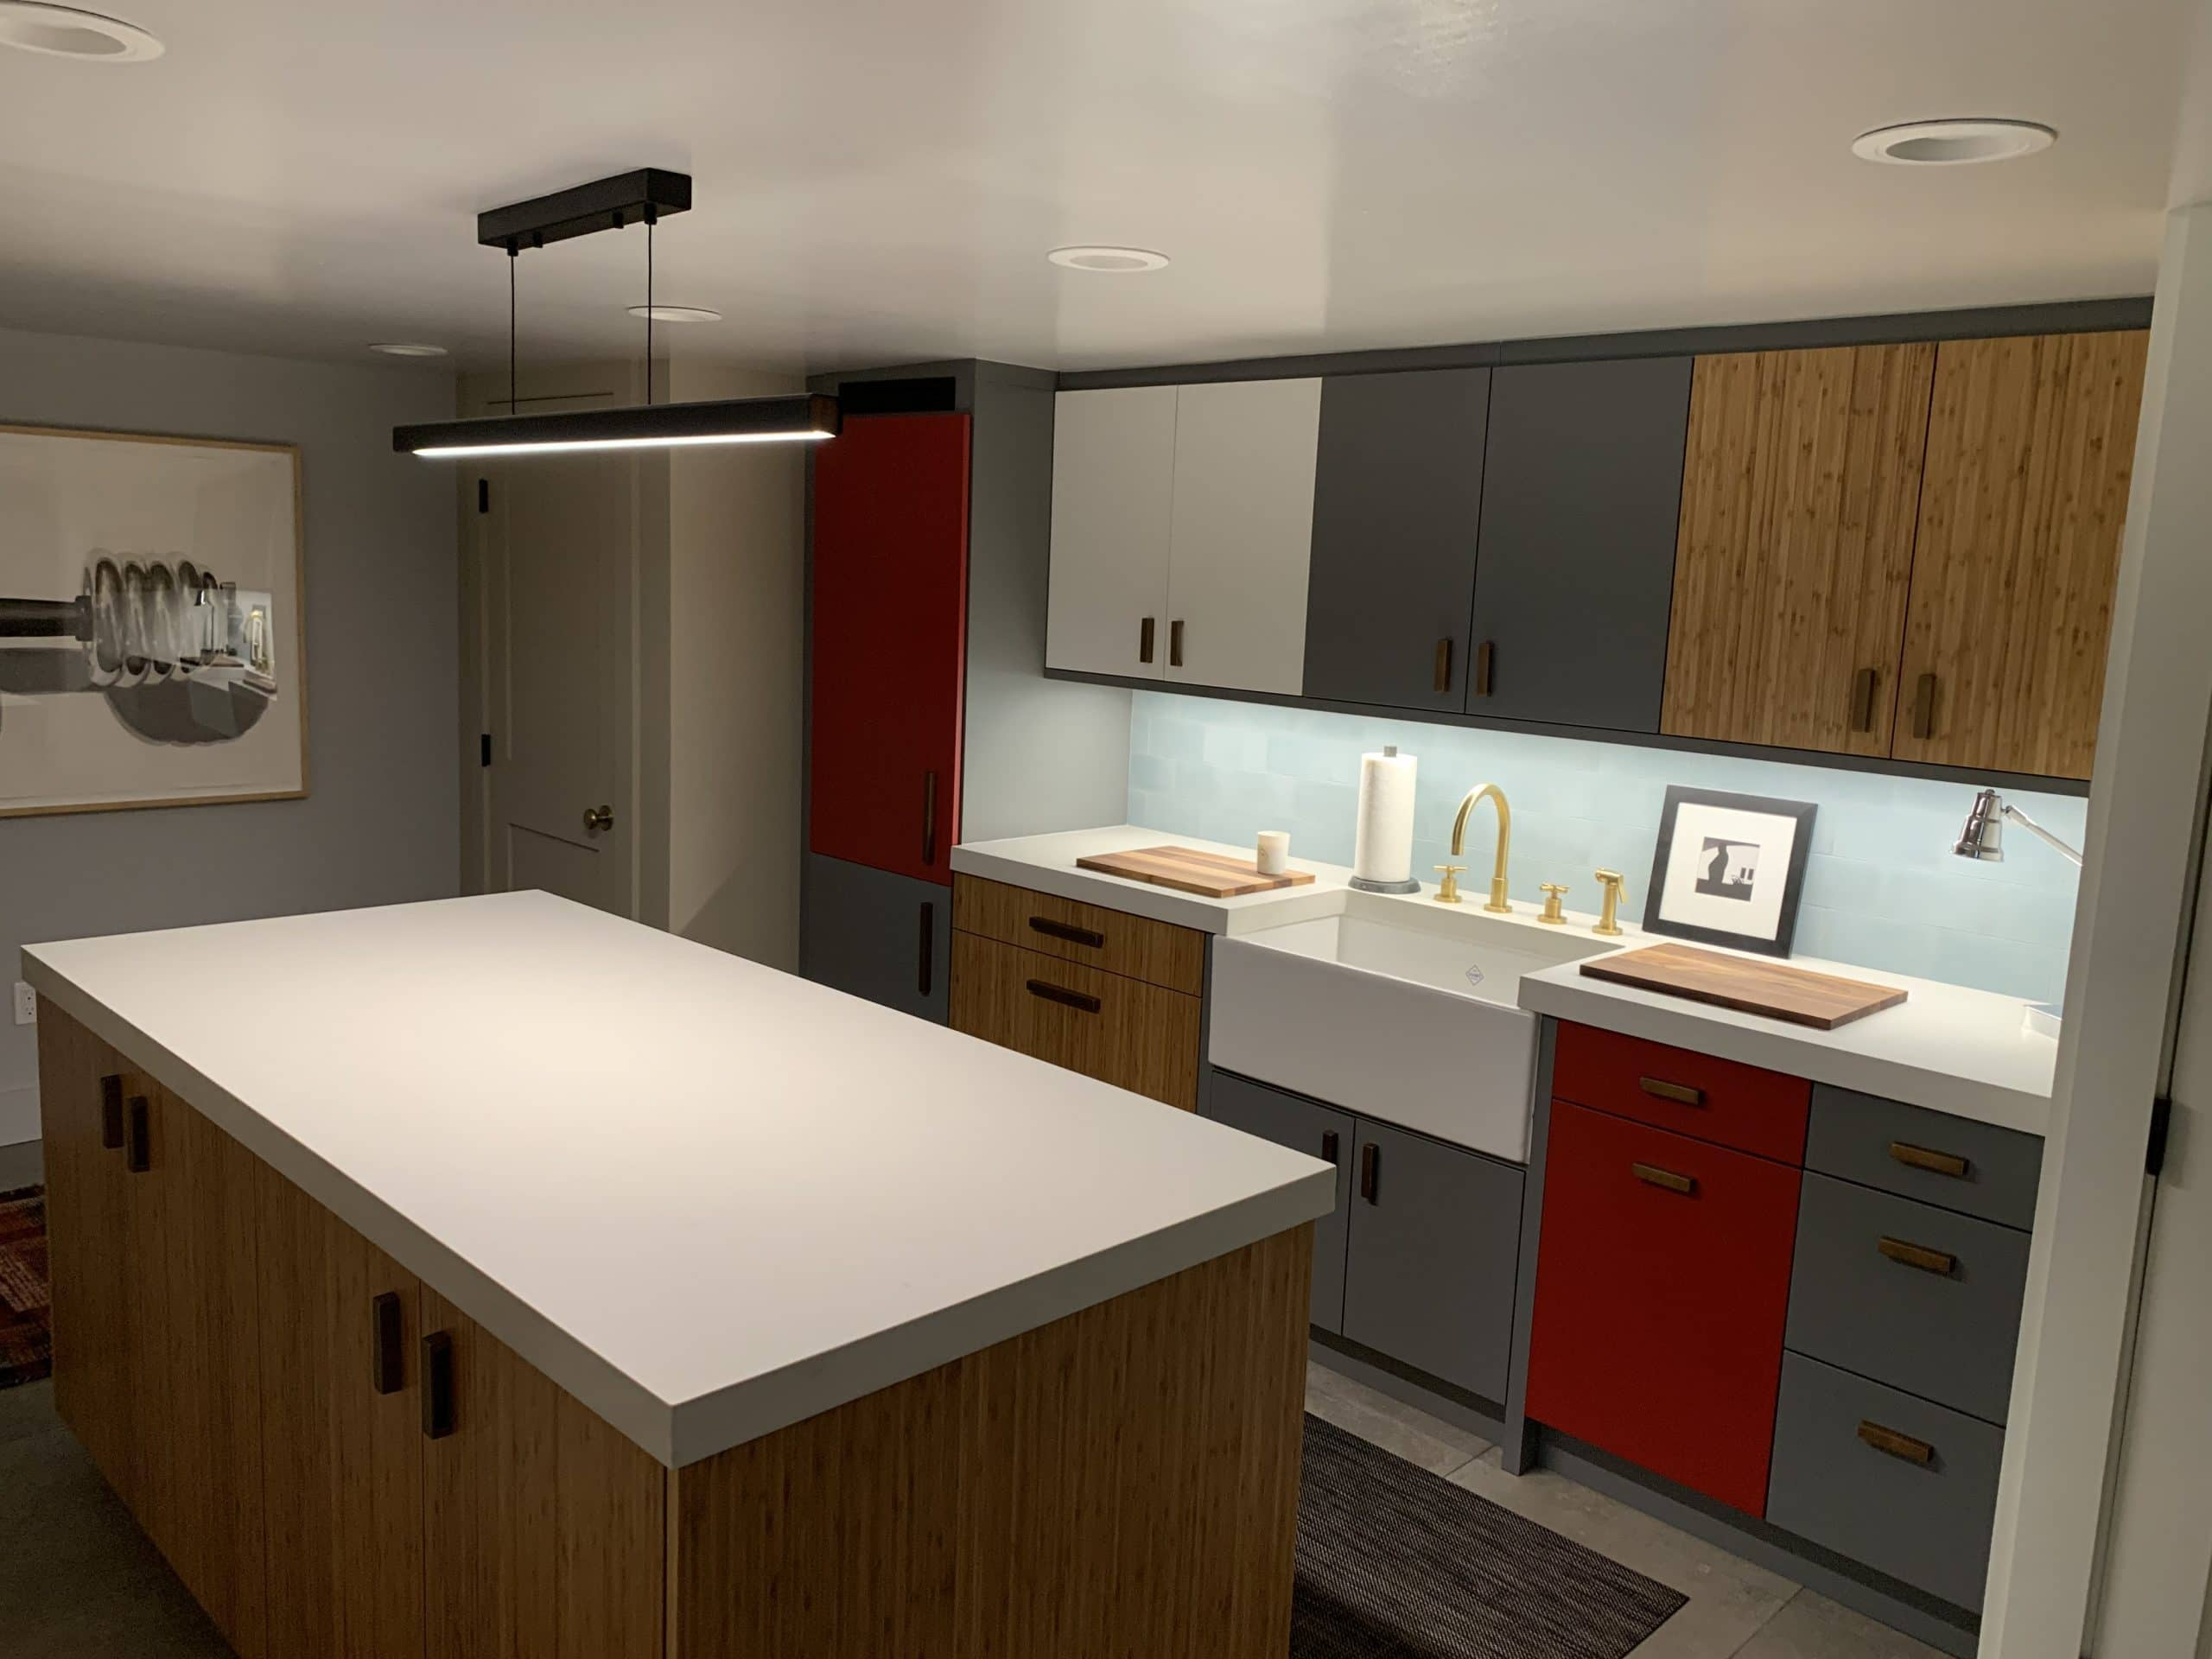 Basement Remodel Modern Kitchen